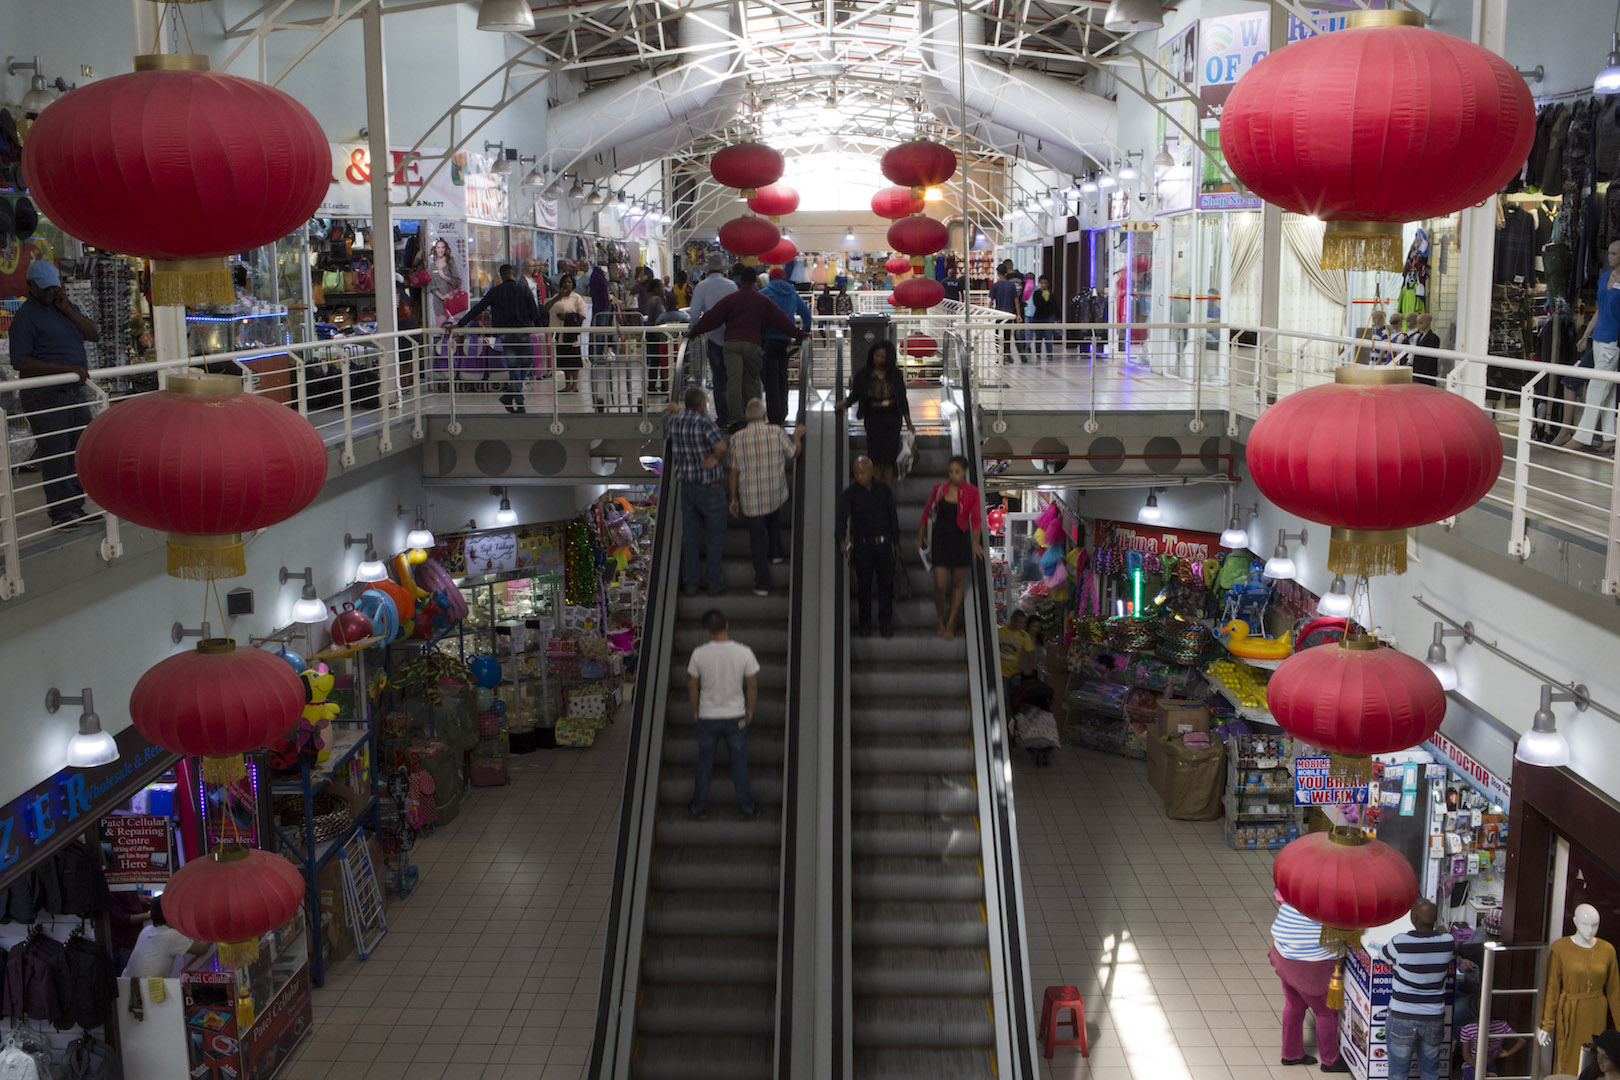 Johannesburg South's, China Mall. The mall is very popular on weekends and caters for all shoppers, offering competitive pricing compared to the more 'mainstream' shopping districts in Johannesburg.